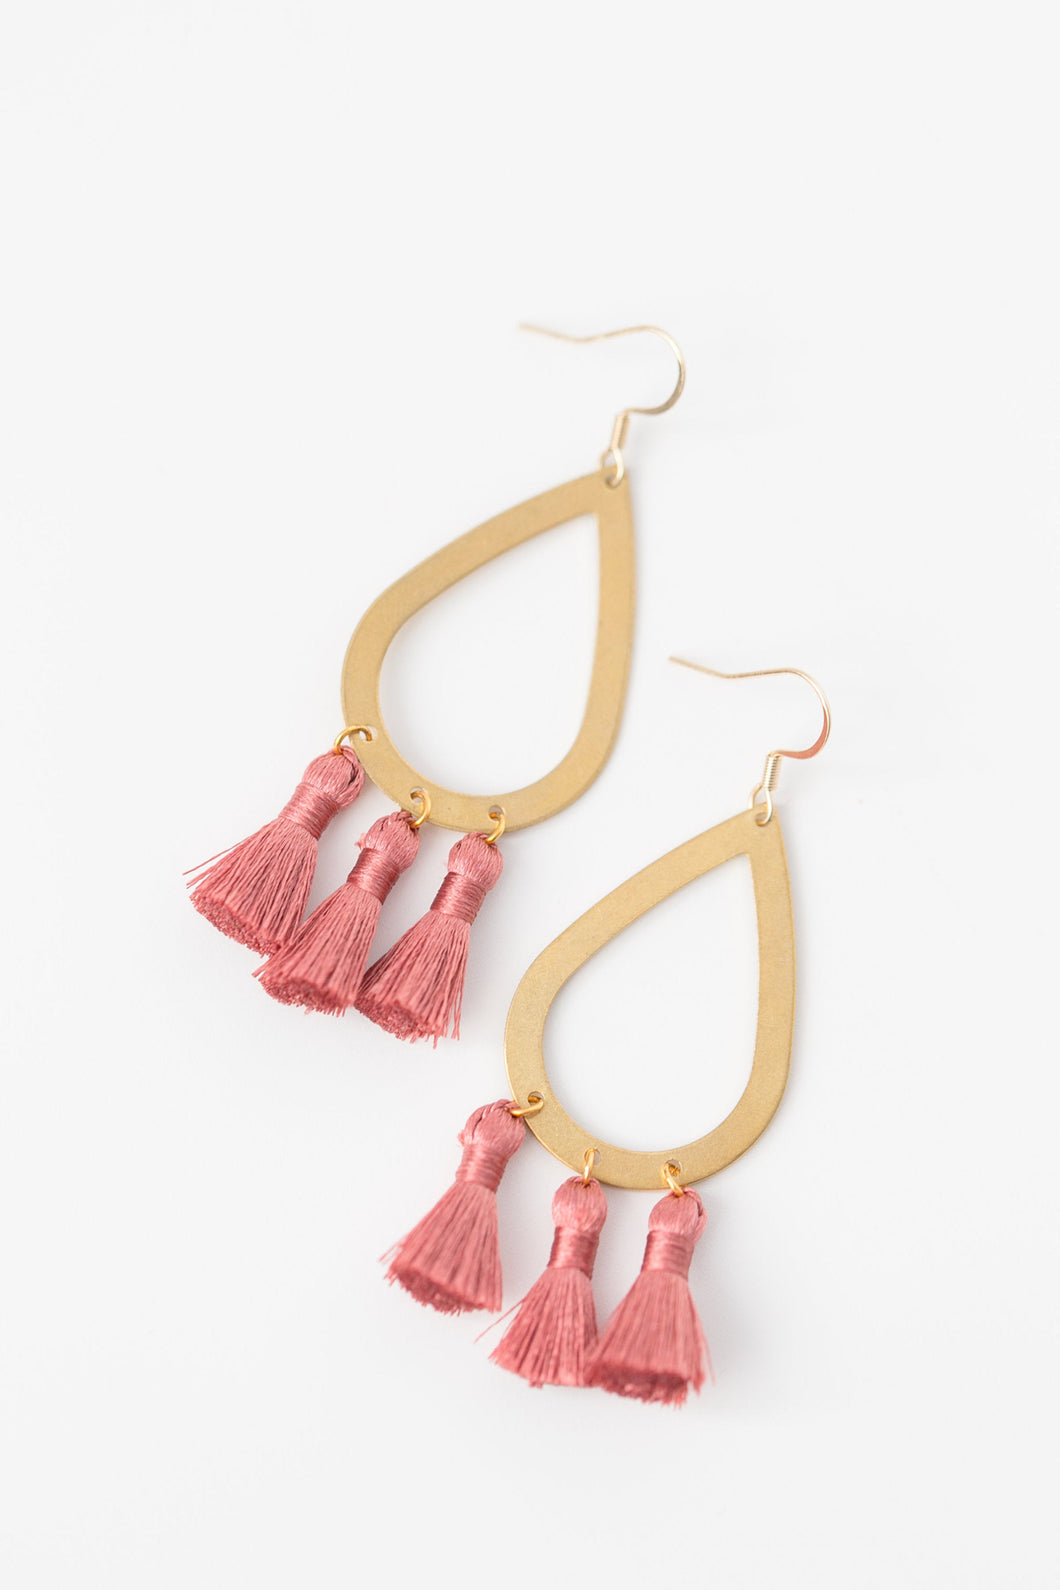 THE SAMARA brass + tassel earrings